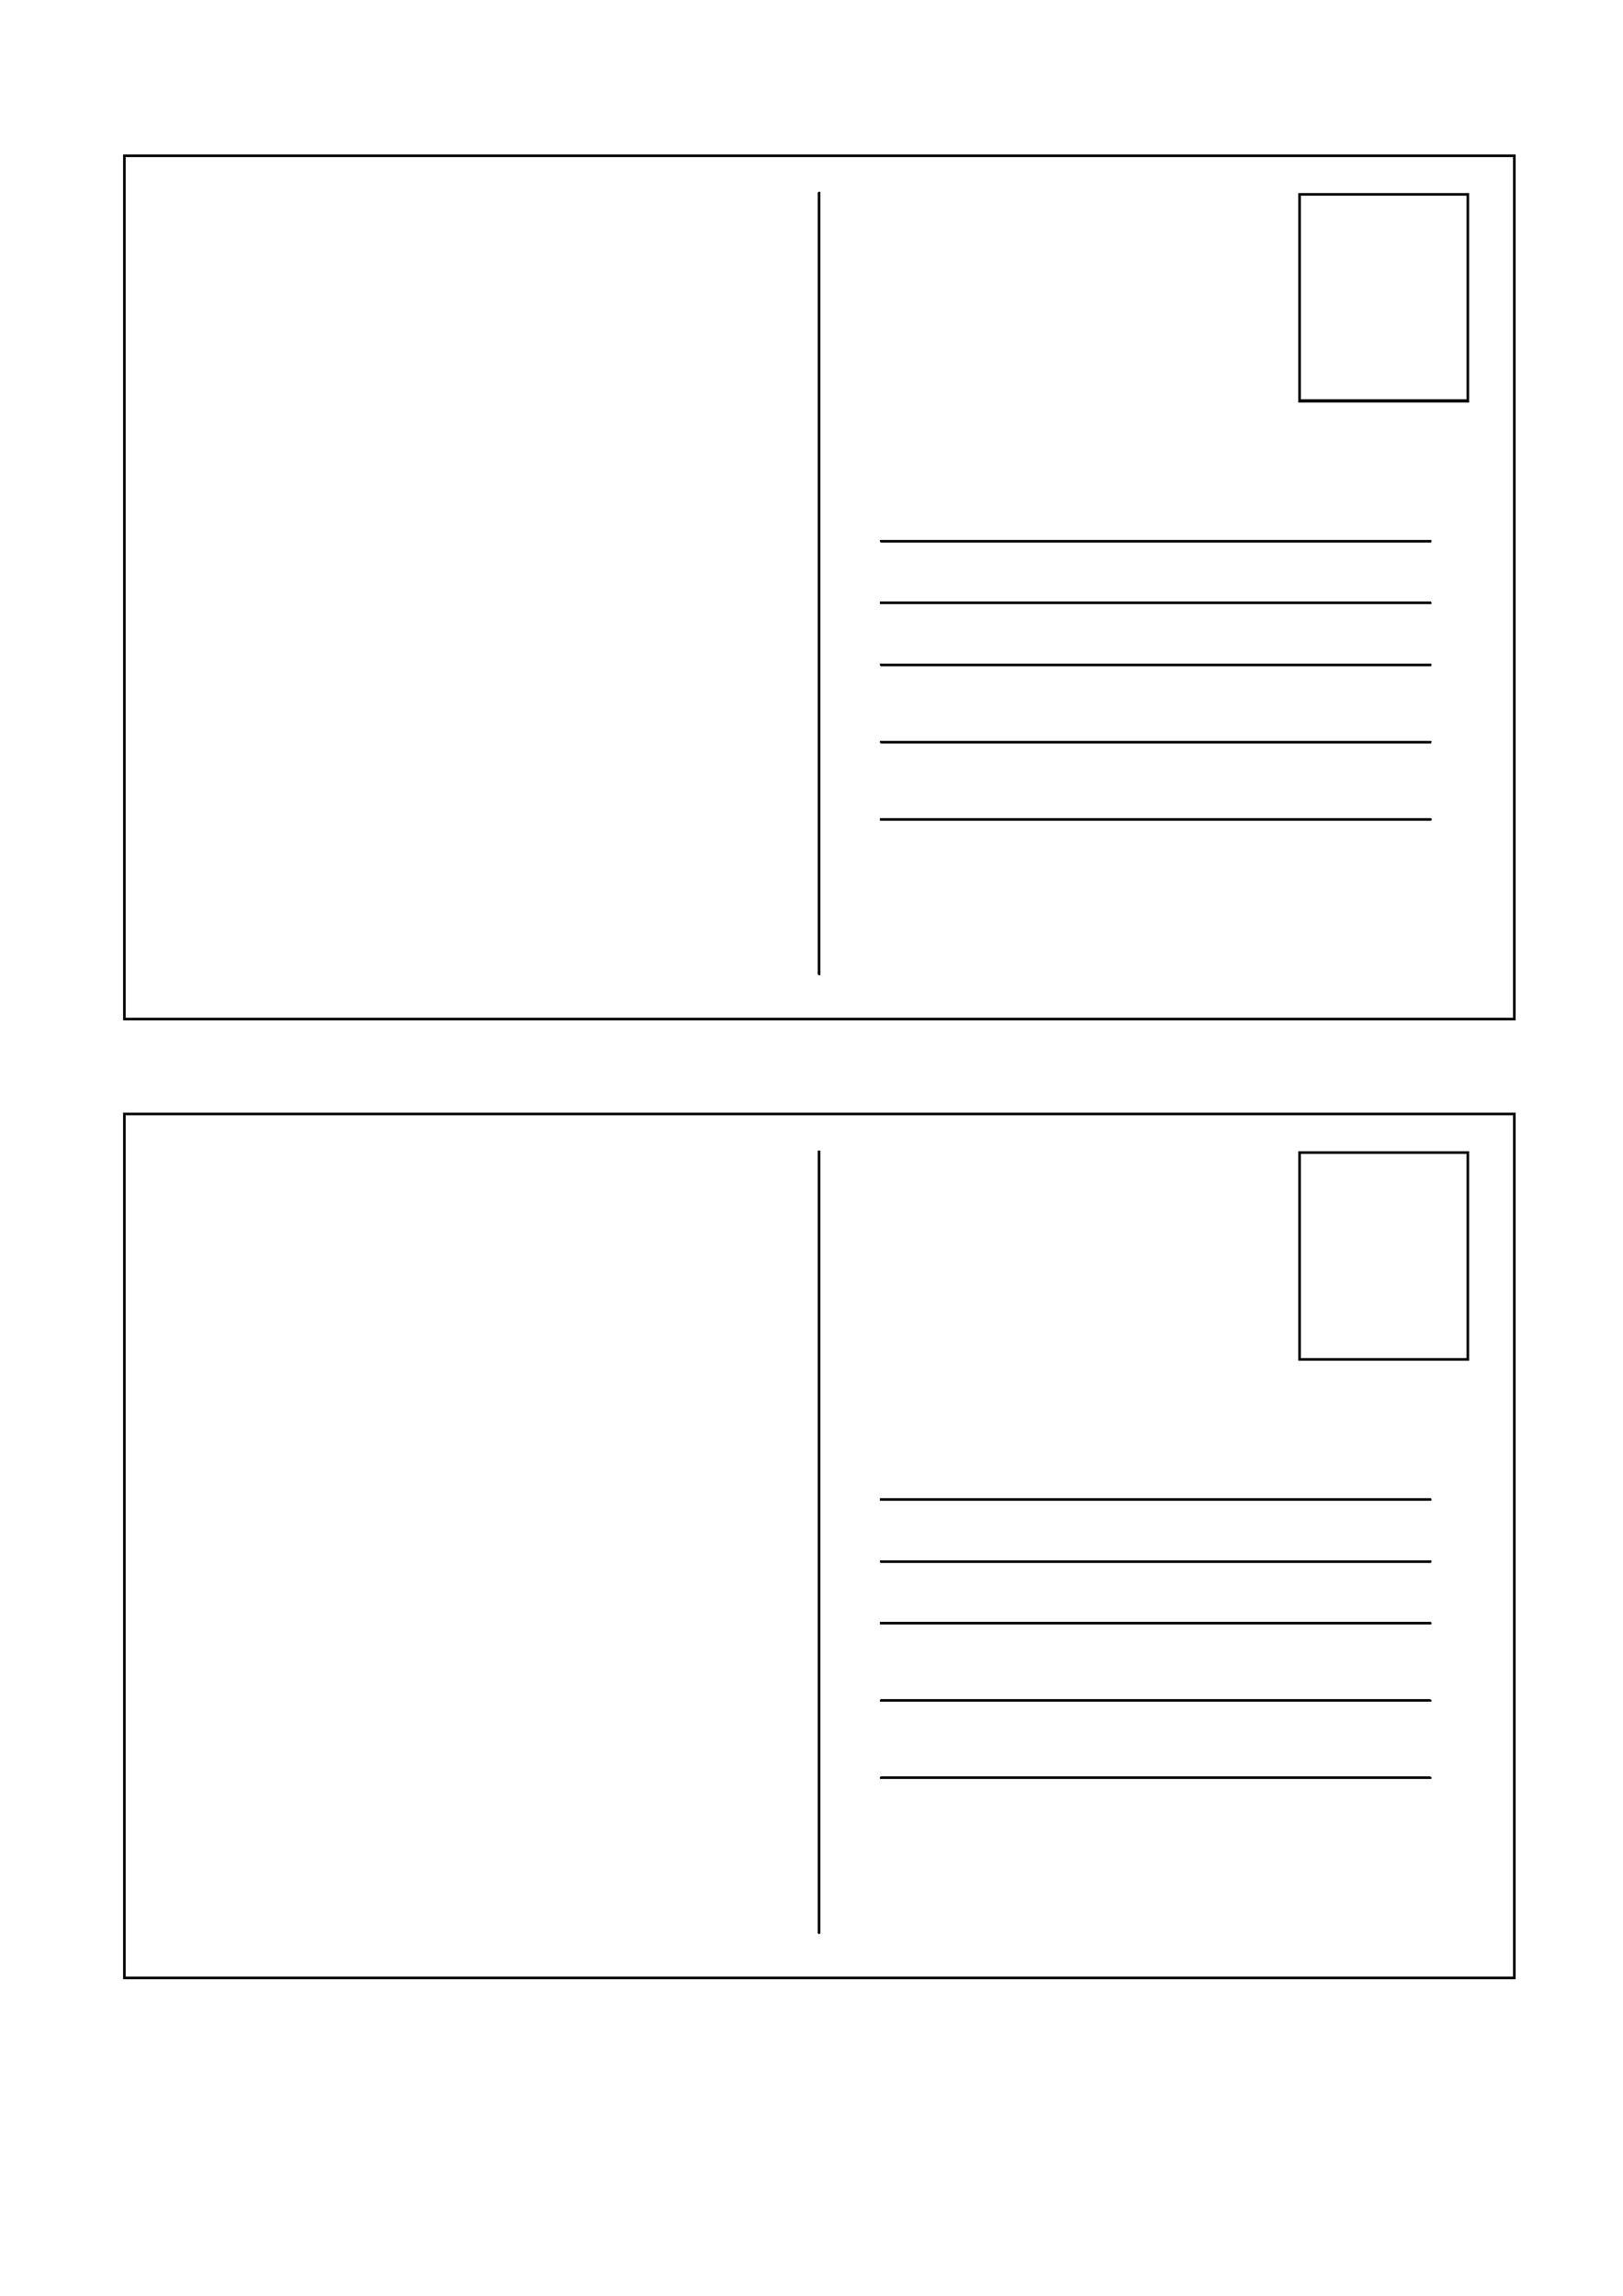 Word Postcard Template Free proposals templates word planner template – Free Microsoft Word Postcard Template